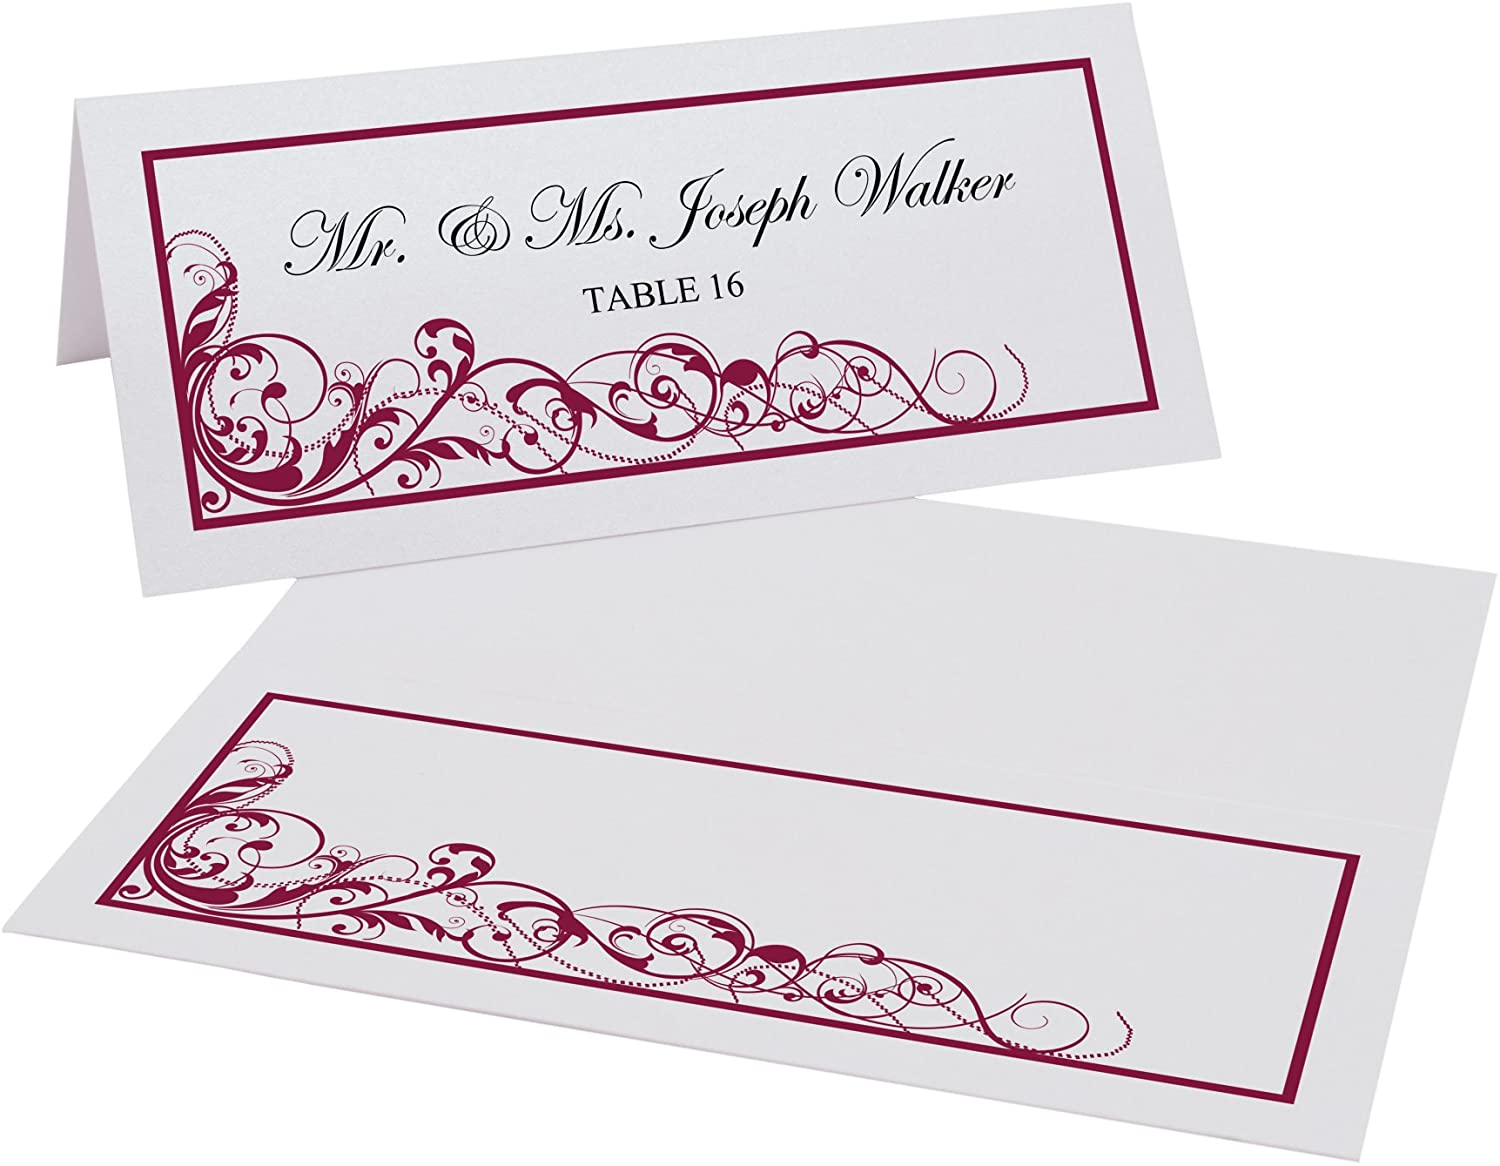 Scribble Vintage Swirl Printable Place Cards, Burgundy, Set of 60 (10 Sheets), Laser & Inkjet Printers - Perfect for Wedding, Parties, and Special Events